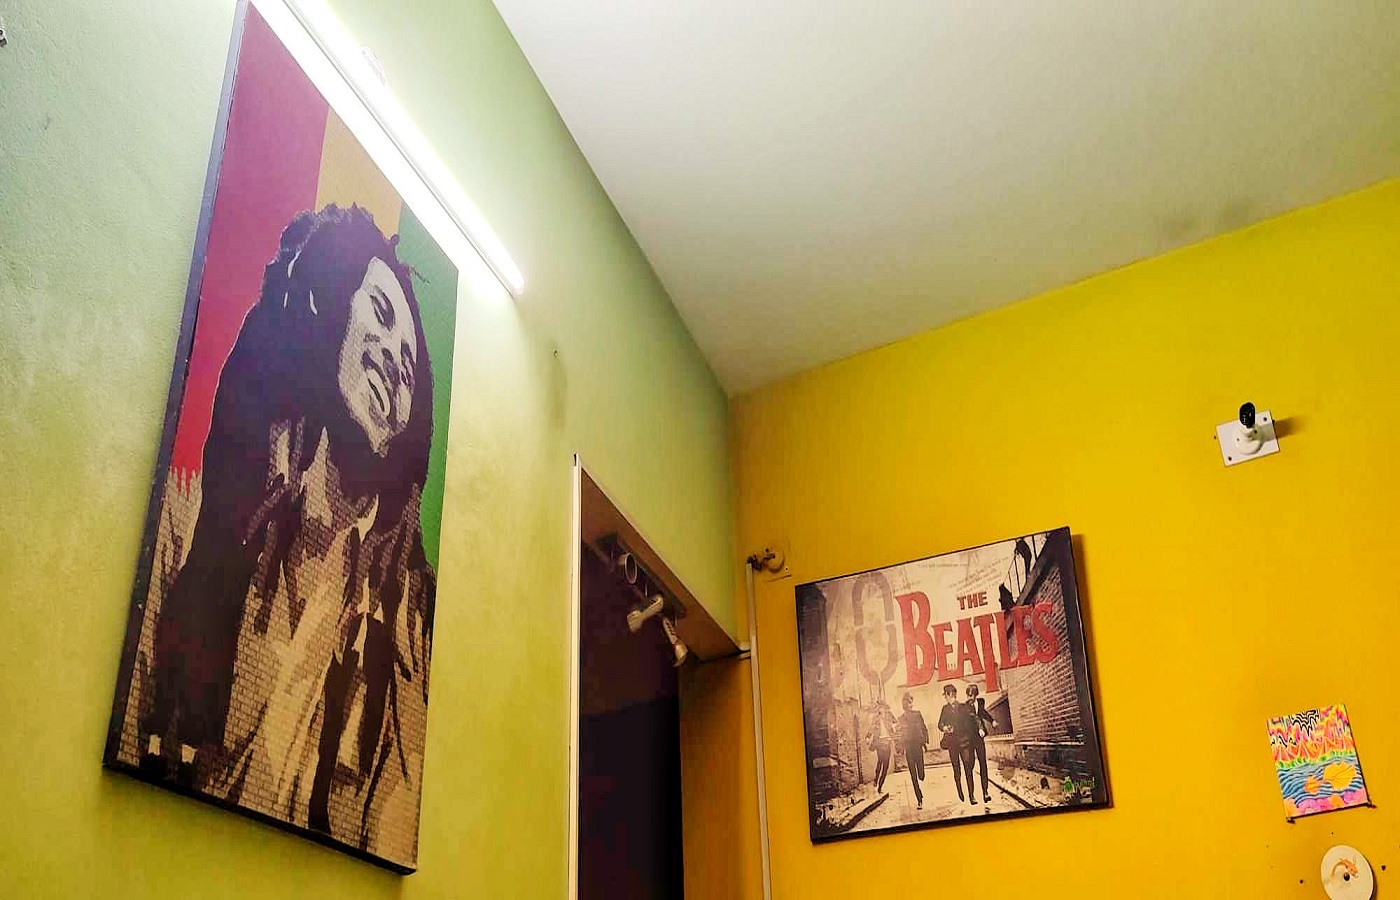 Posters on the wall